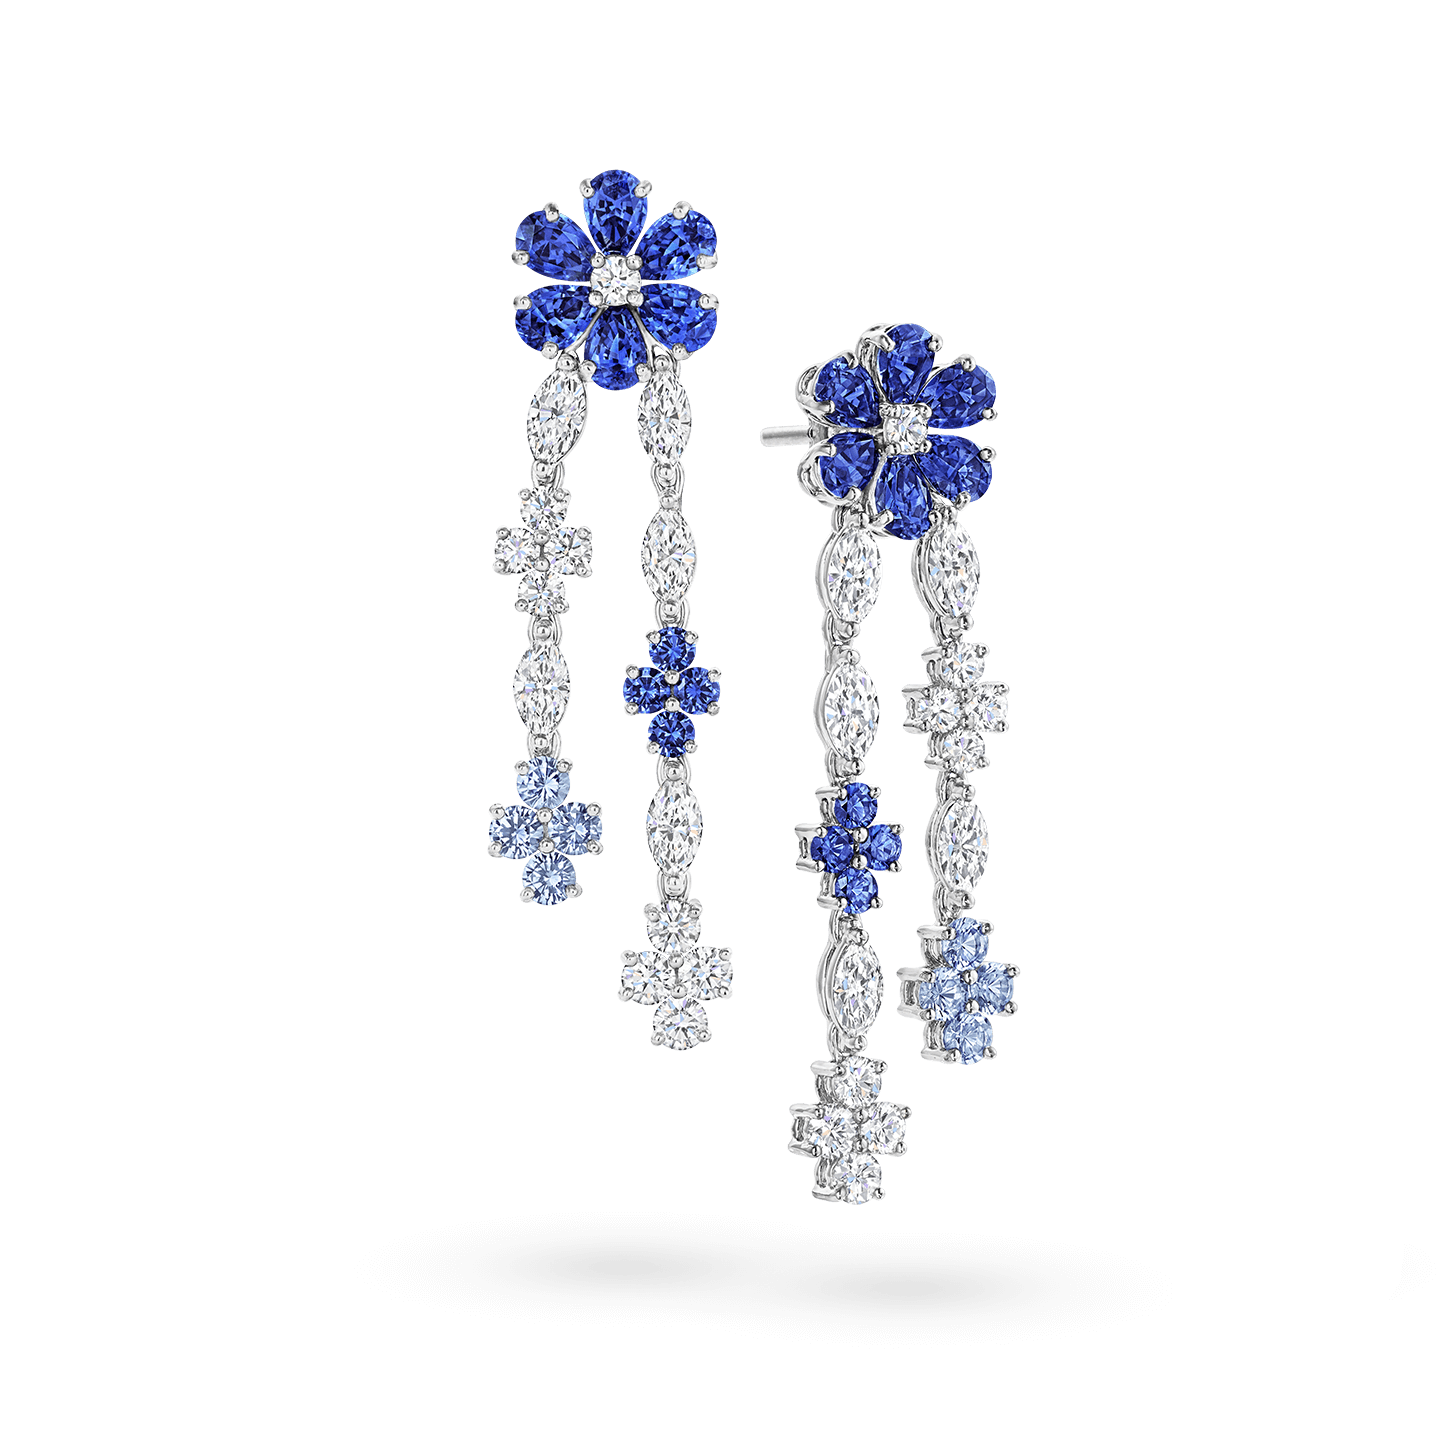 Forget-Me-Not Sapphire and Diamond Drop Earrings, Product Image 2